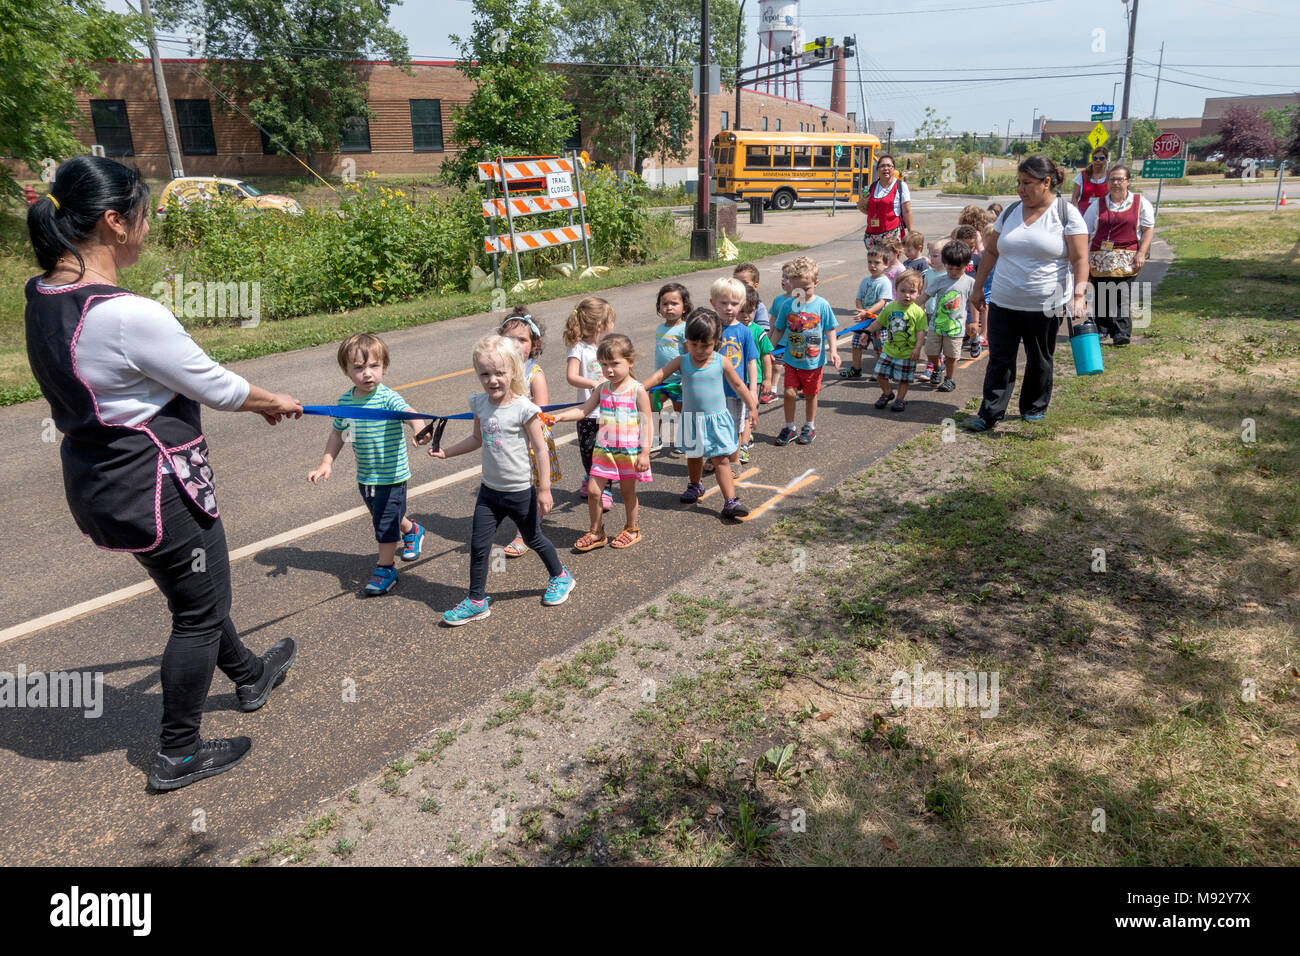 Daycare children age 3 holding a looped strap walking along the Midtown Greenway bicycle & pedestrian trail. Minneapolis Minnesota MN USA Stock Photo